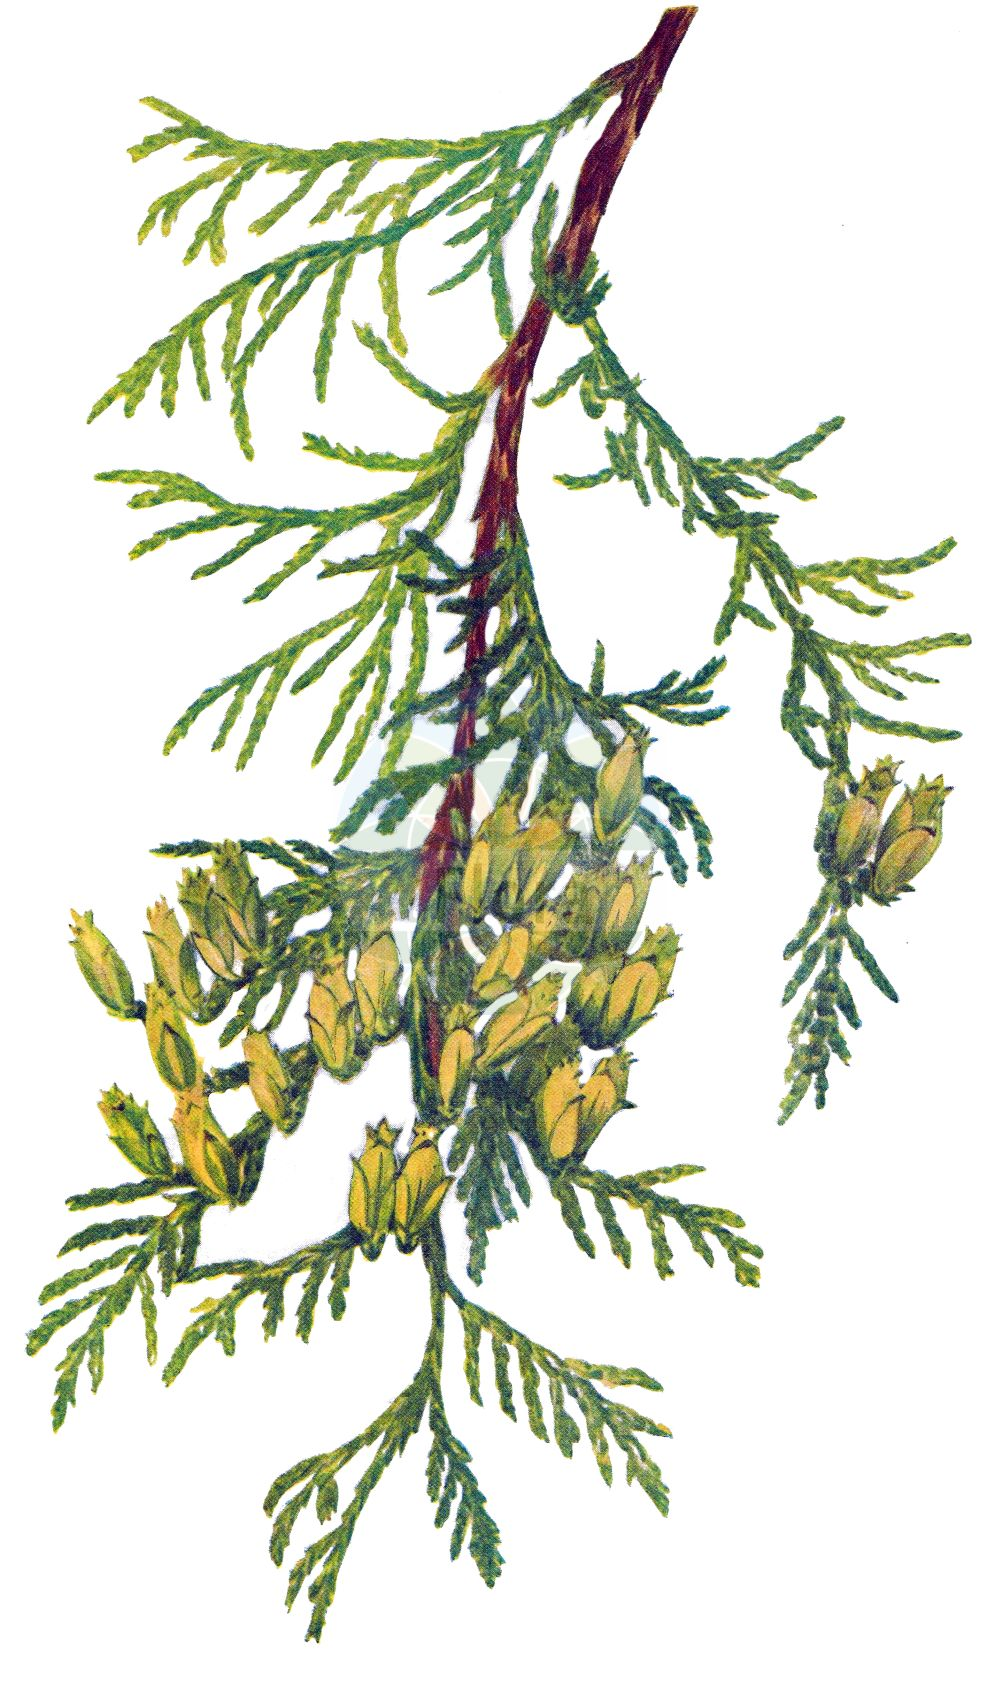 Historische Abbildung von Thuja plicata (Riesen-Lebensbaum - Western Red-cedar). Das Bild zeigt Blatt, Bluete, Frucht und Same. ---- Historical Drawing of Thuja plicata (Riesen-Lebensbaum - Western Red-cedar).The image is showing leaf, flower, fruit and seed.(Thuja plicata,Riesen-Lebensbaum,Western Red-cedar,Thuja plicata,Riesen-Lebensbaum,Western Red-cedar,British Columbian Red Cedar,Canoe Cedar,Giant Arbor Vitae,Shinglewood,Thuja,Lebensbaum,Cedar,Cupressaceae,Zypressengewaechse,Cypress family,Blatt,Bluete,Frucht,Same,leaf,flower,fruit,seed,Walcott (1860-1940))